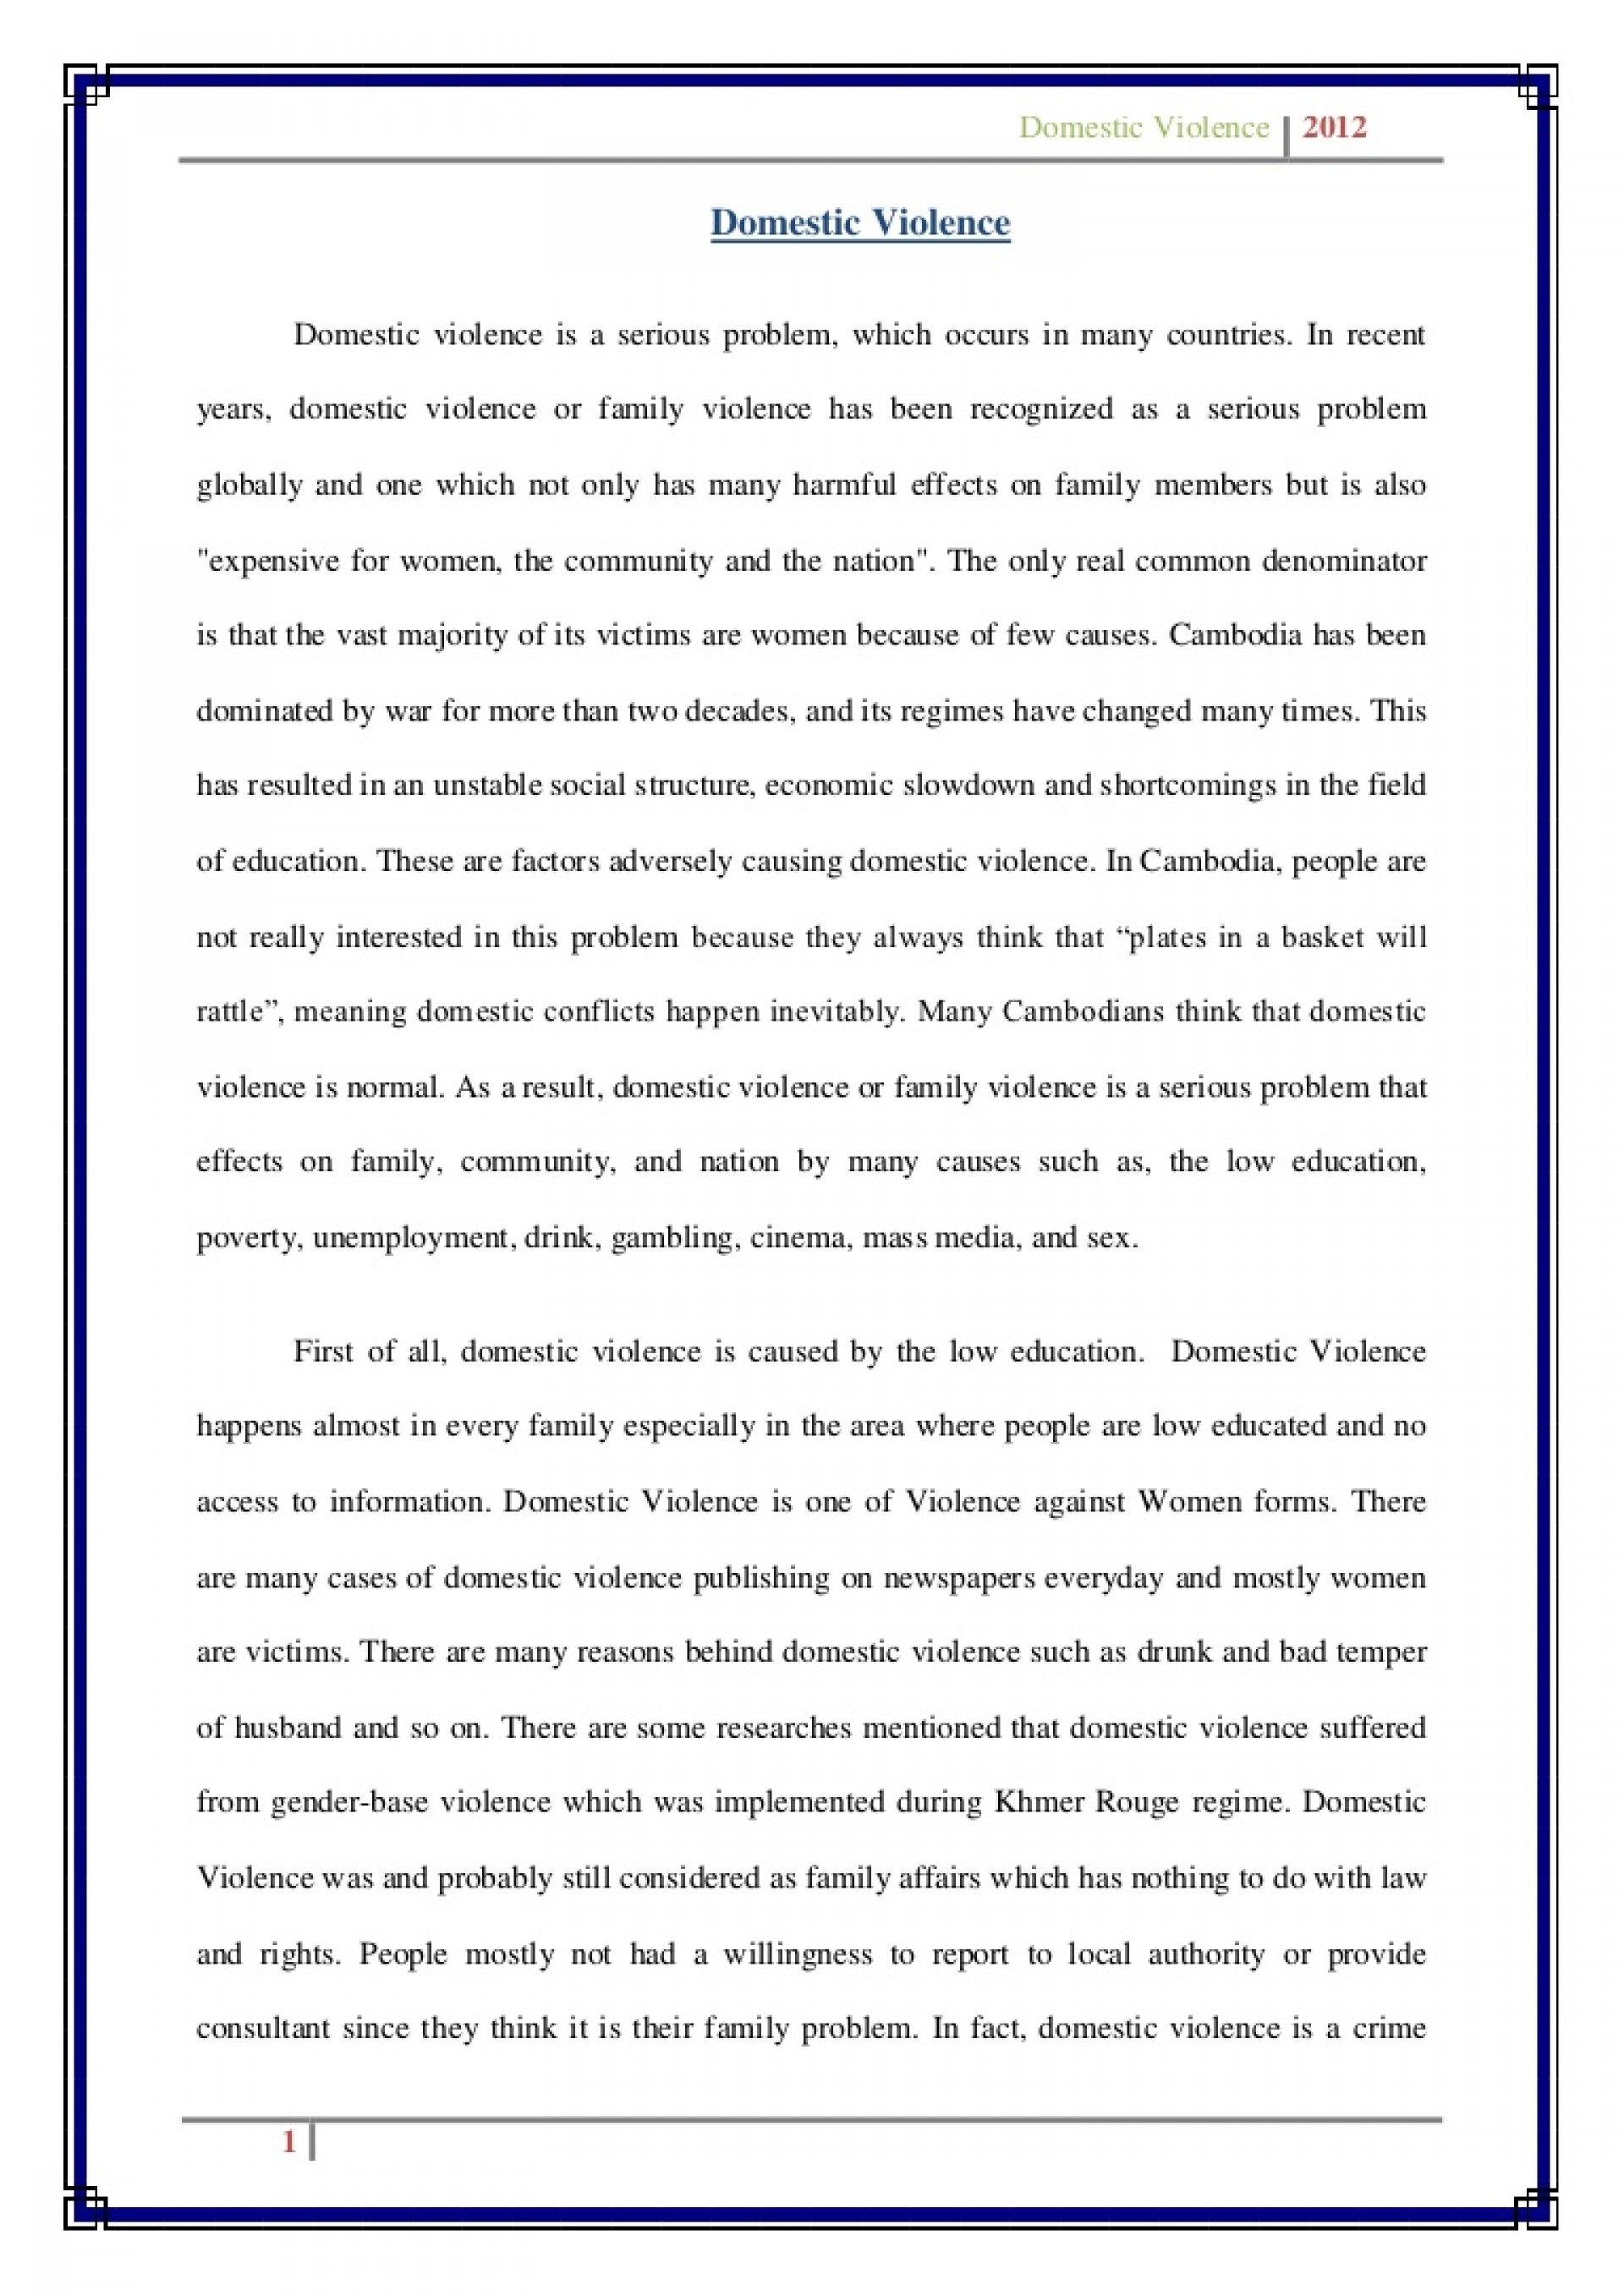 003 Stunning Domestic Violence Essay Picture  Persuasive Topic Question1920